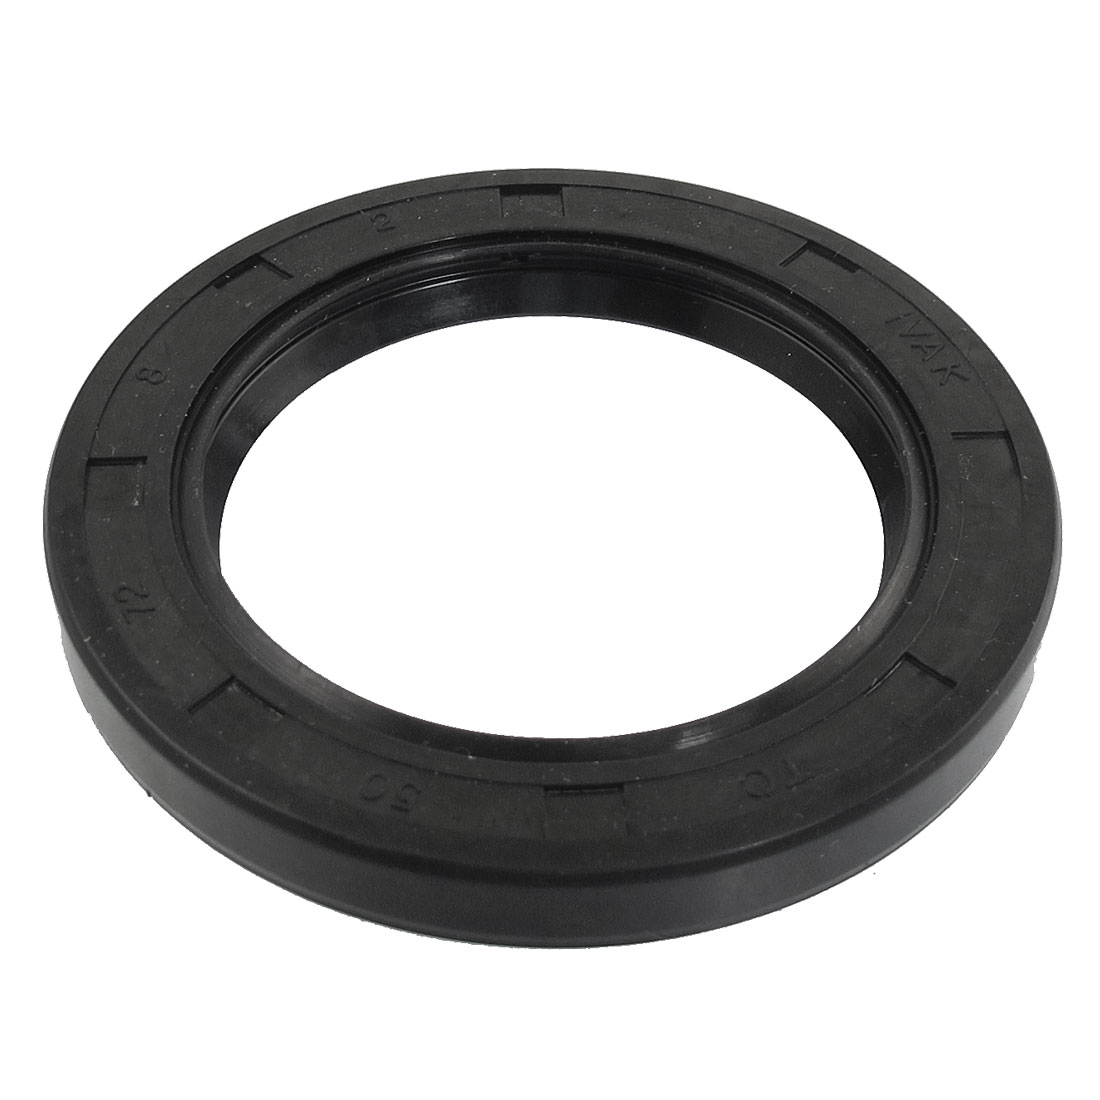 Black Nitrile Rubber Dual Lips Oil Shaft Seal TC 50mm x 72mm x 8mm